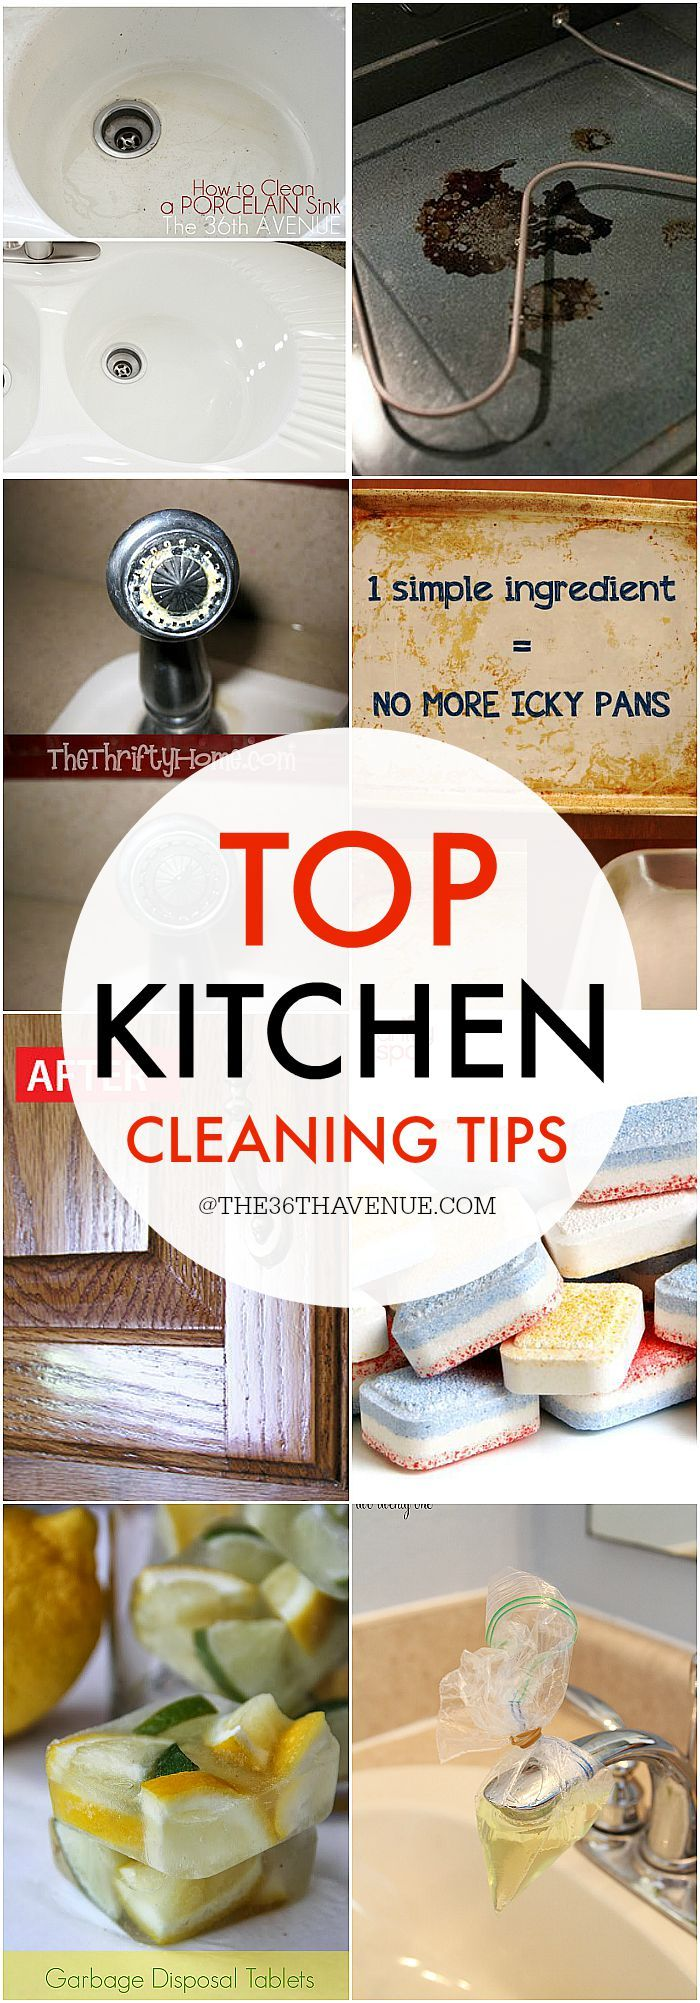 25 best ideas about kitchen cleaning tips on pinterest